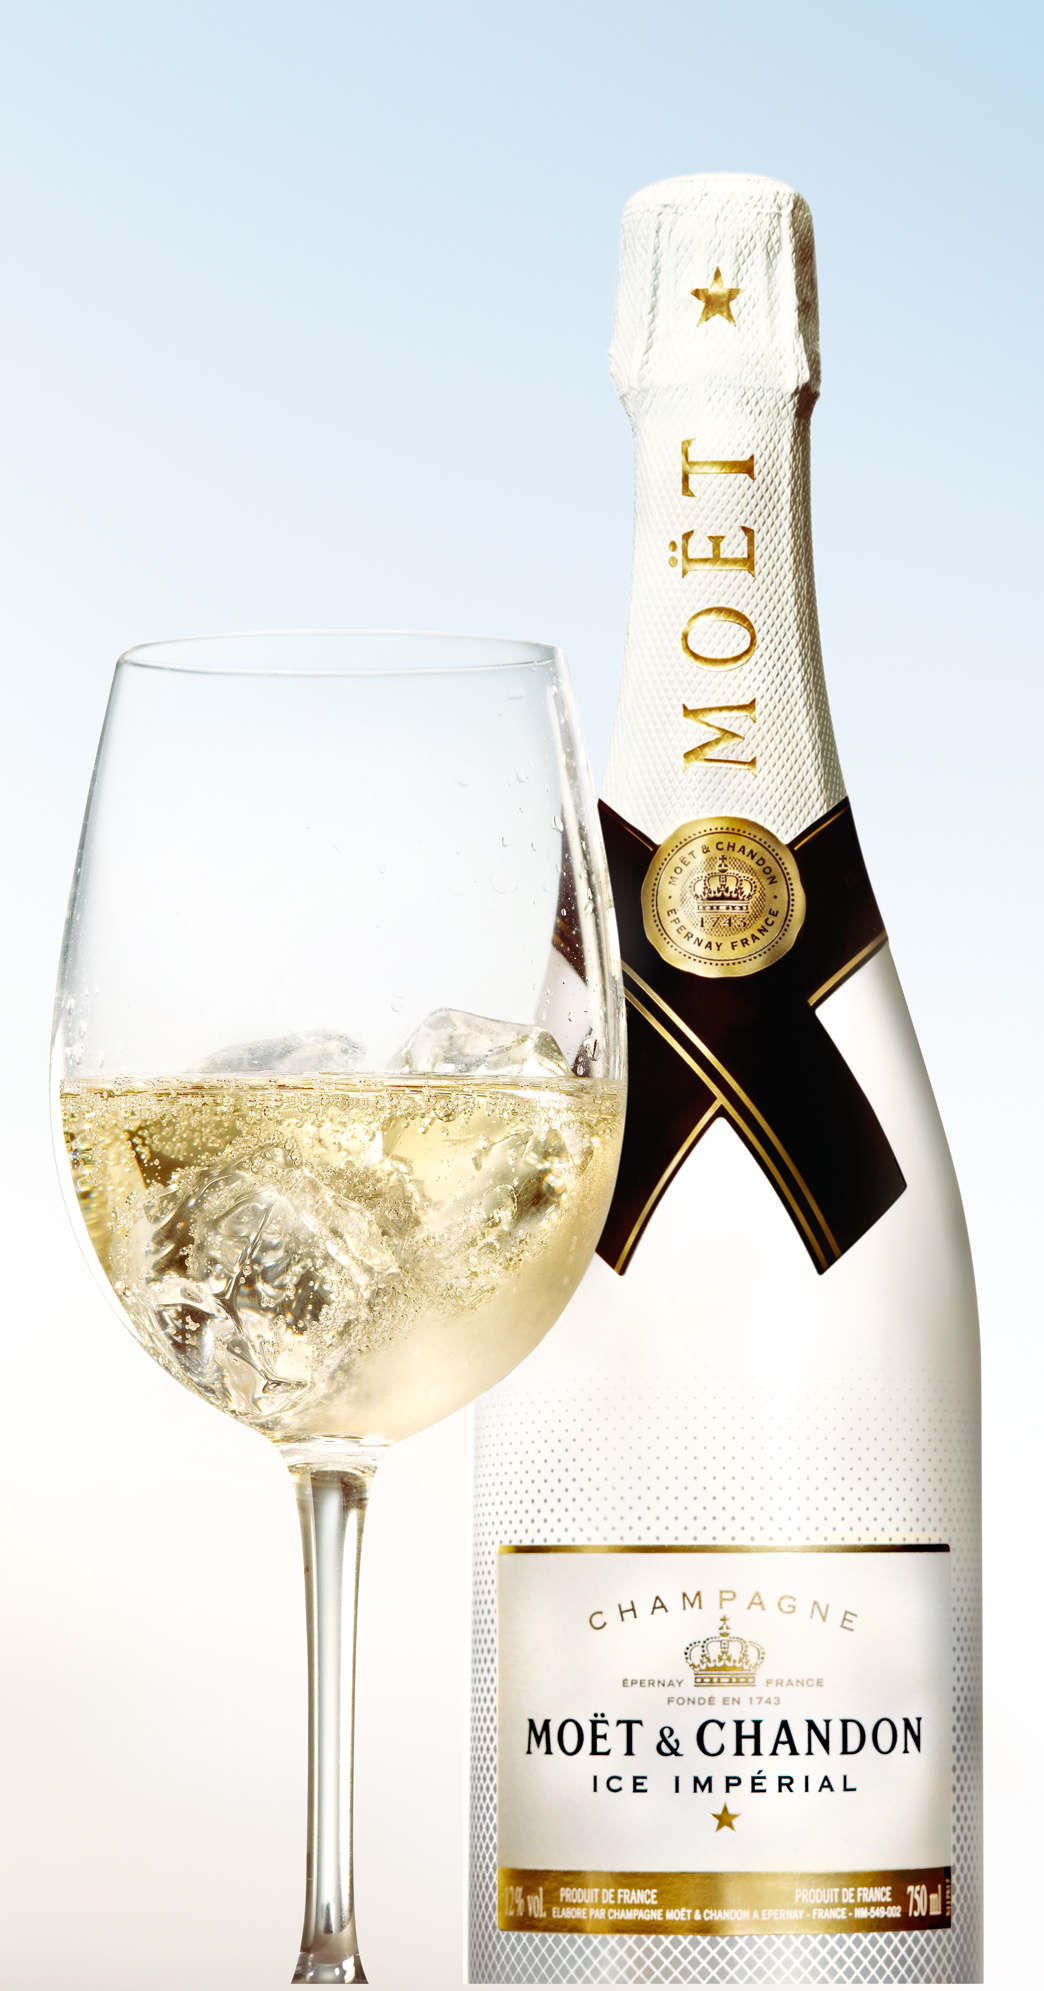 Moët  Chandon Png - Pin by Lucy Smith on Yummy | Moet chandon, Champagne, Wine